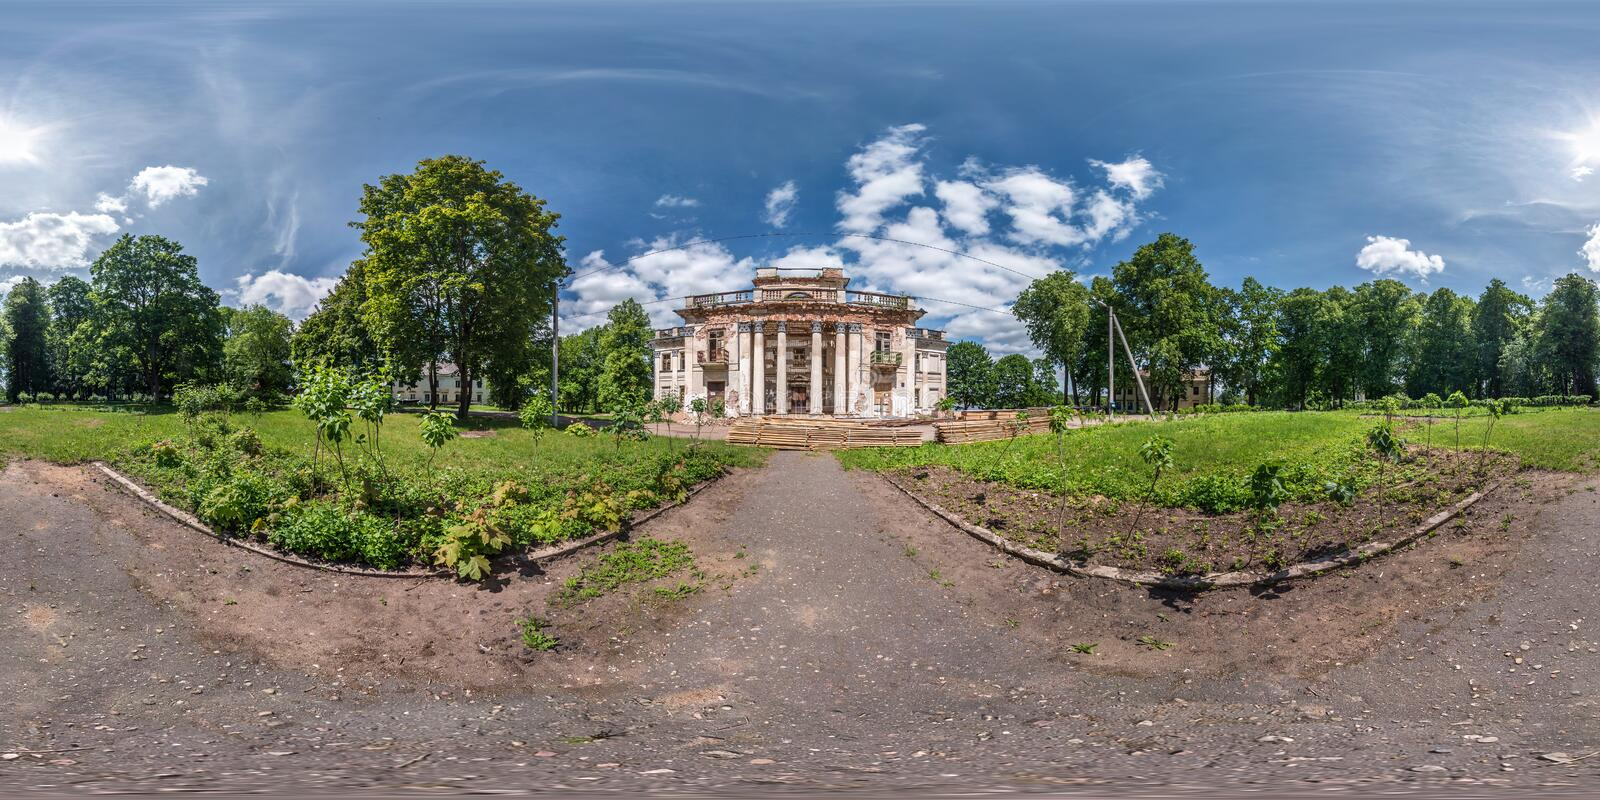 Full seamless spherical hdri panorama 360 degrees angle view near stone abandoned ruined palace and park complex in. Equirectangular projection, VR AR virtual royalty free stock images